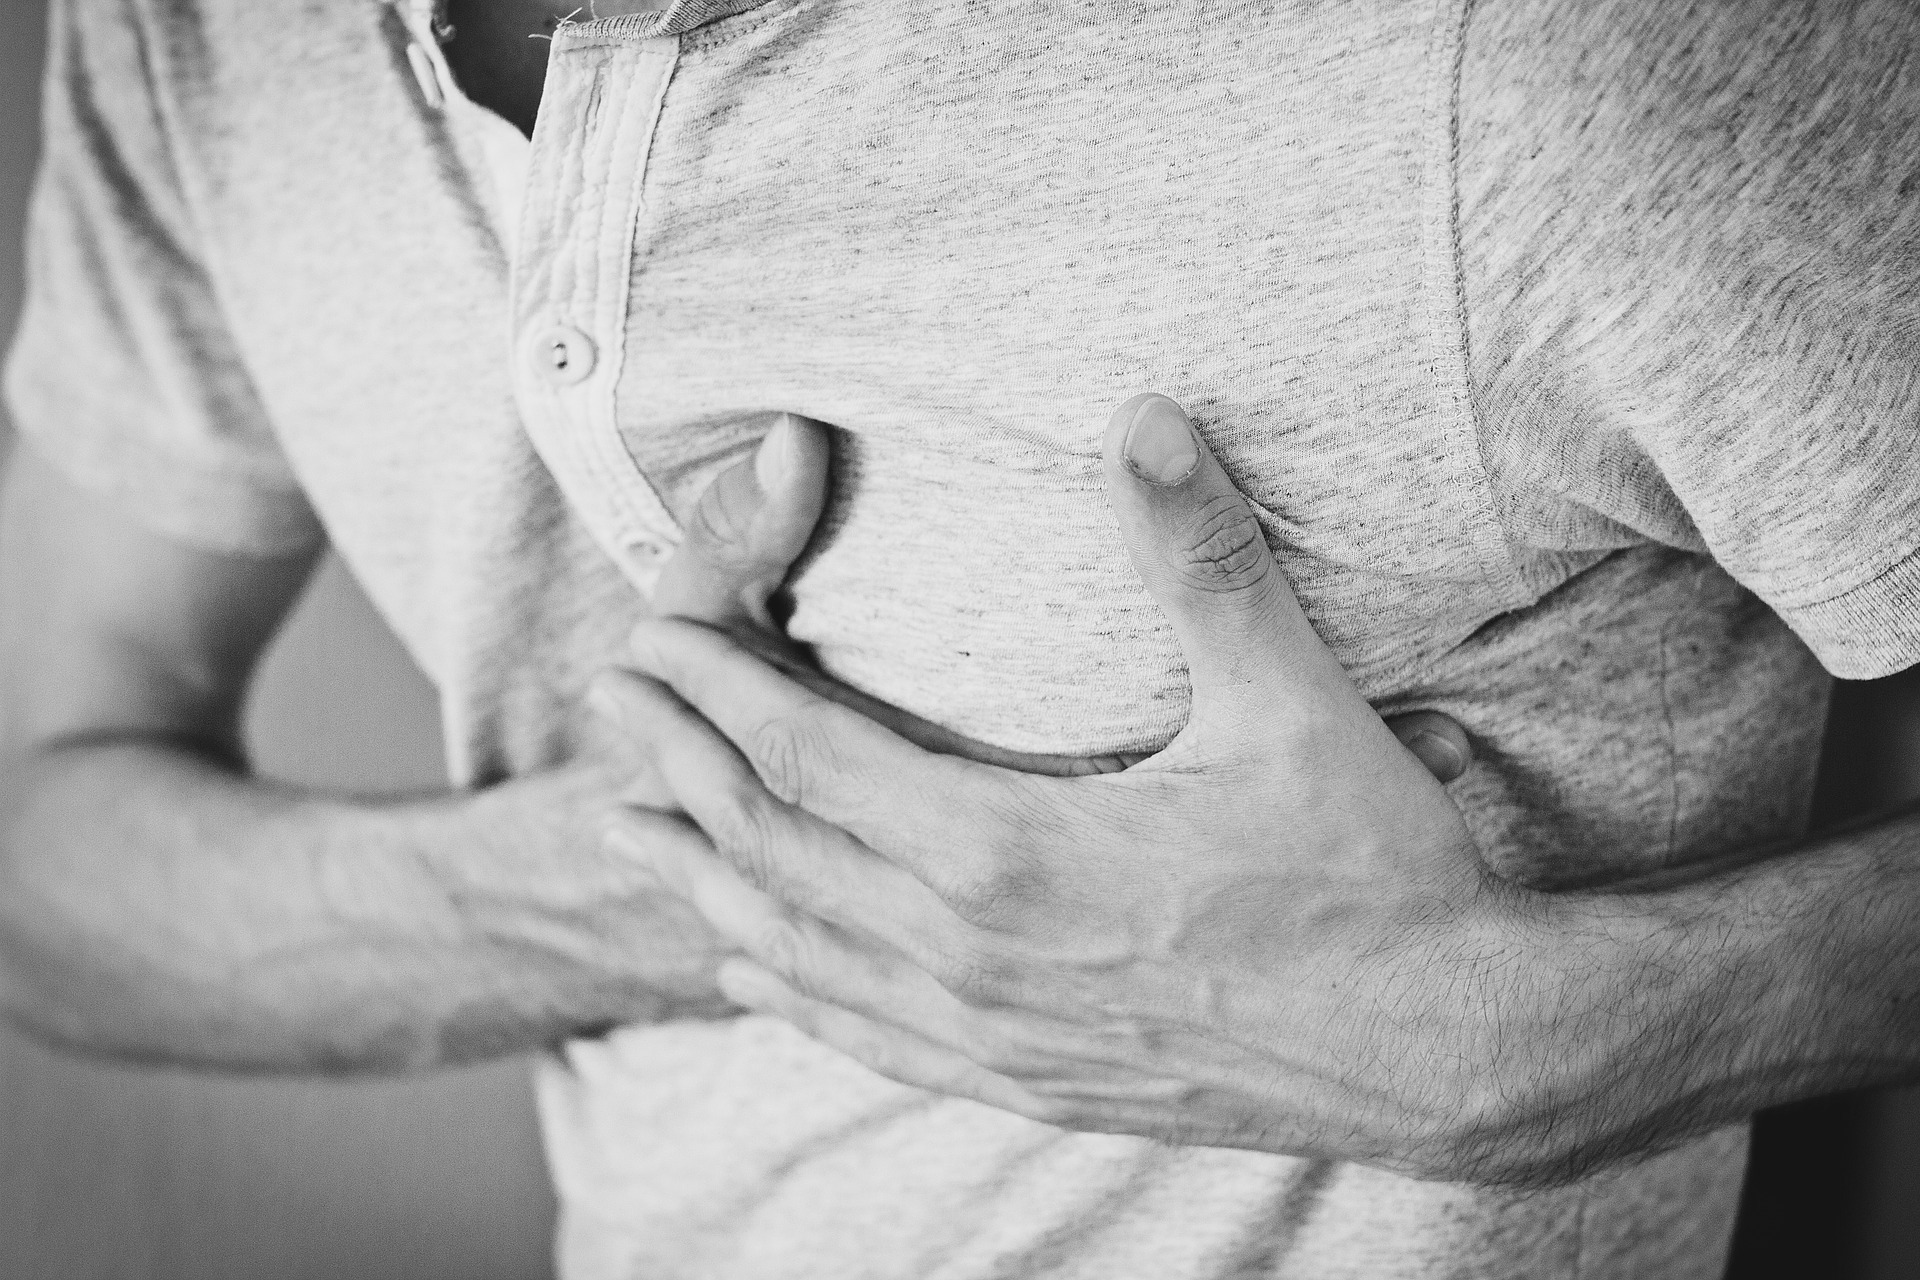 Painkiller linked to increased risk of heart problems